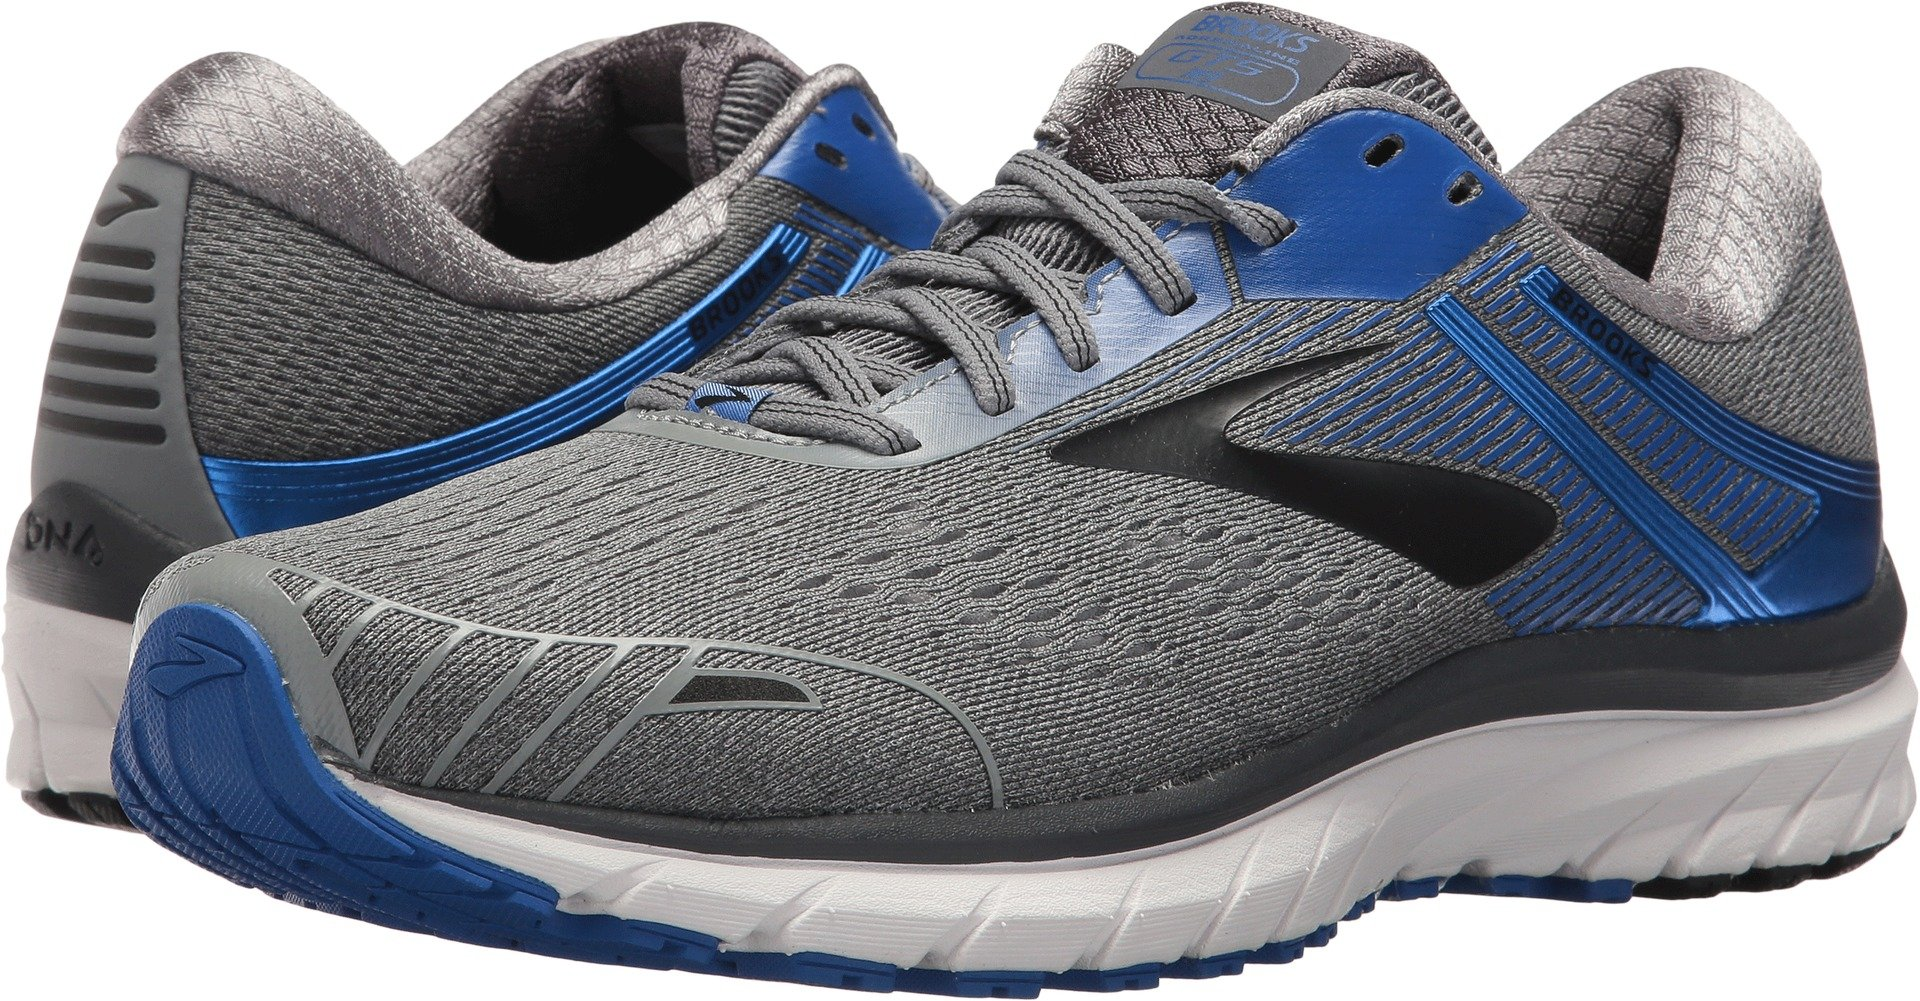 02ae19badef Galleon - Brooks Men s Adrenaline GTS 18 Grey Blue Black 10.5 D US D (M)